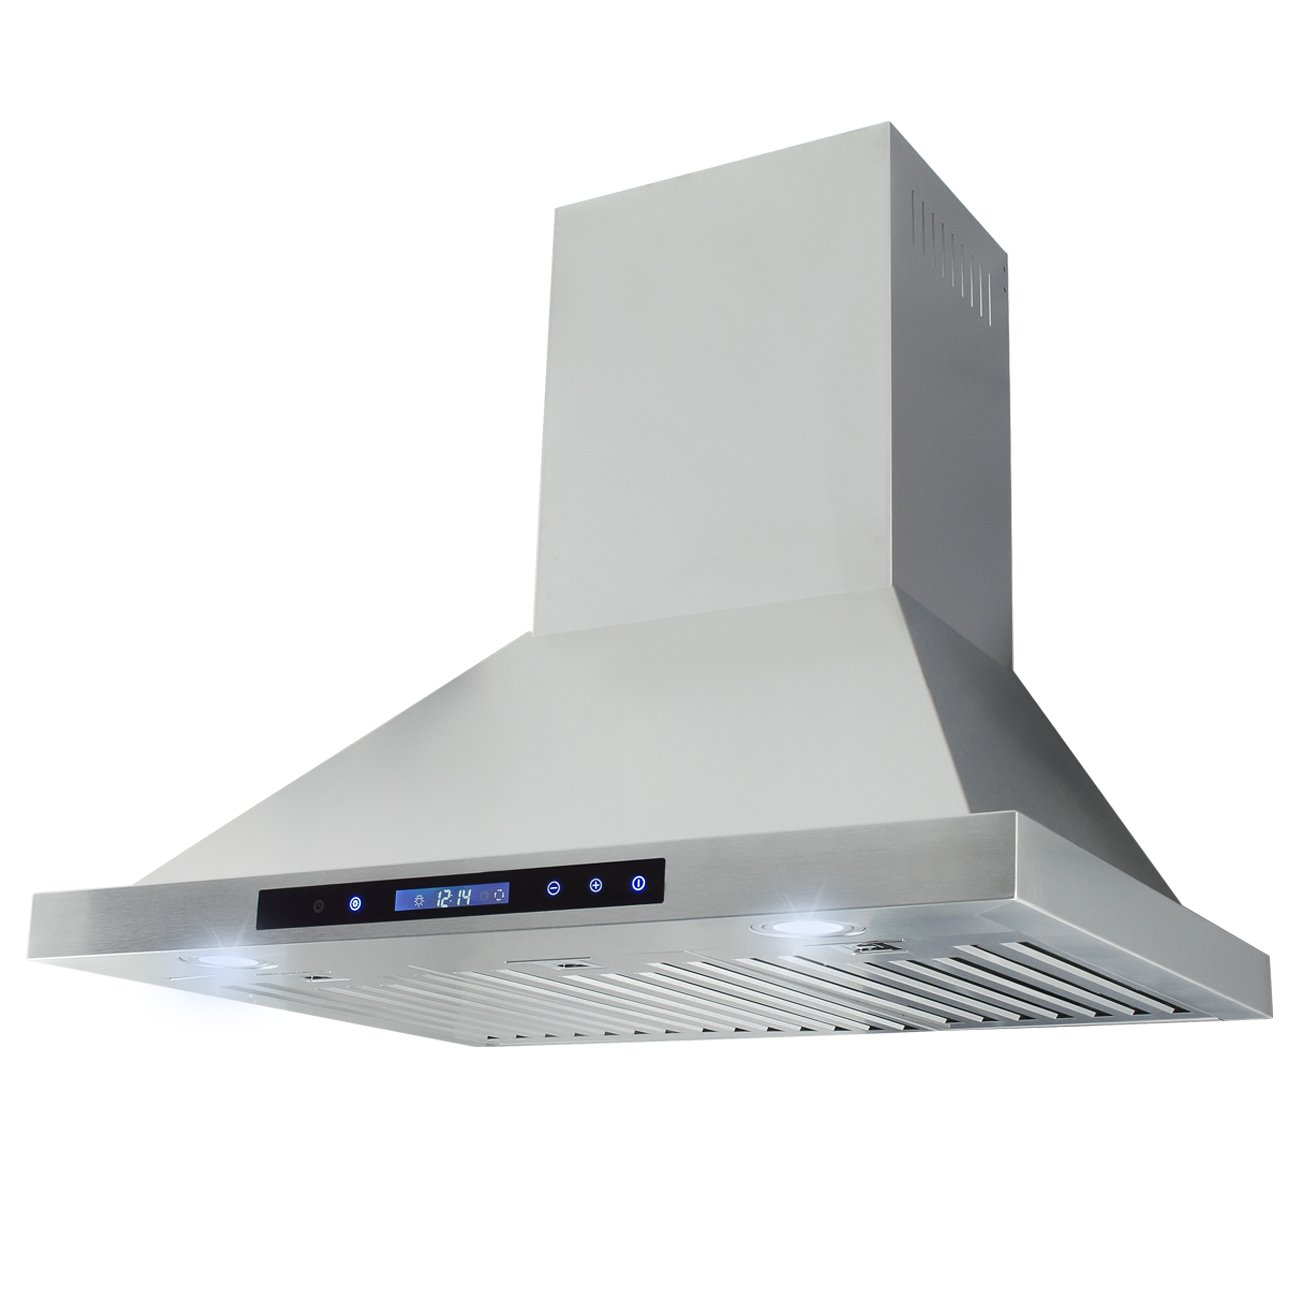 DELLA 36 Panel Control Range Hood Vent Kitchen Wall Mount Silver Cook Touch, Stainless Steel Finish